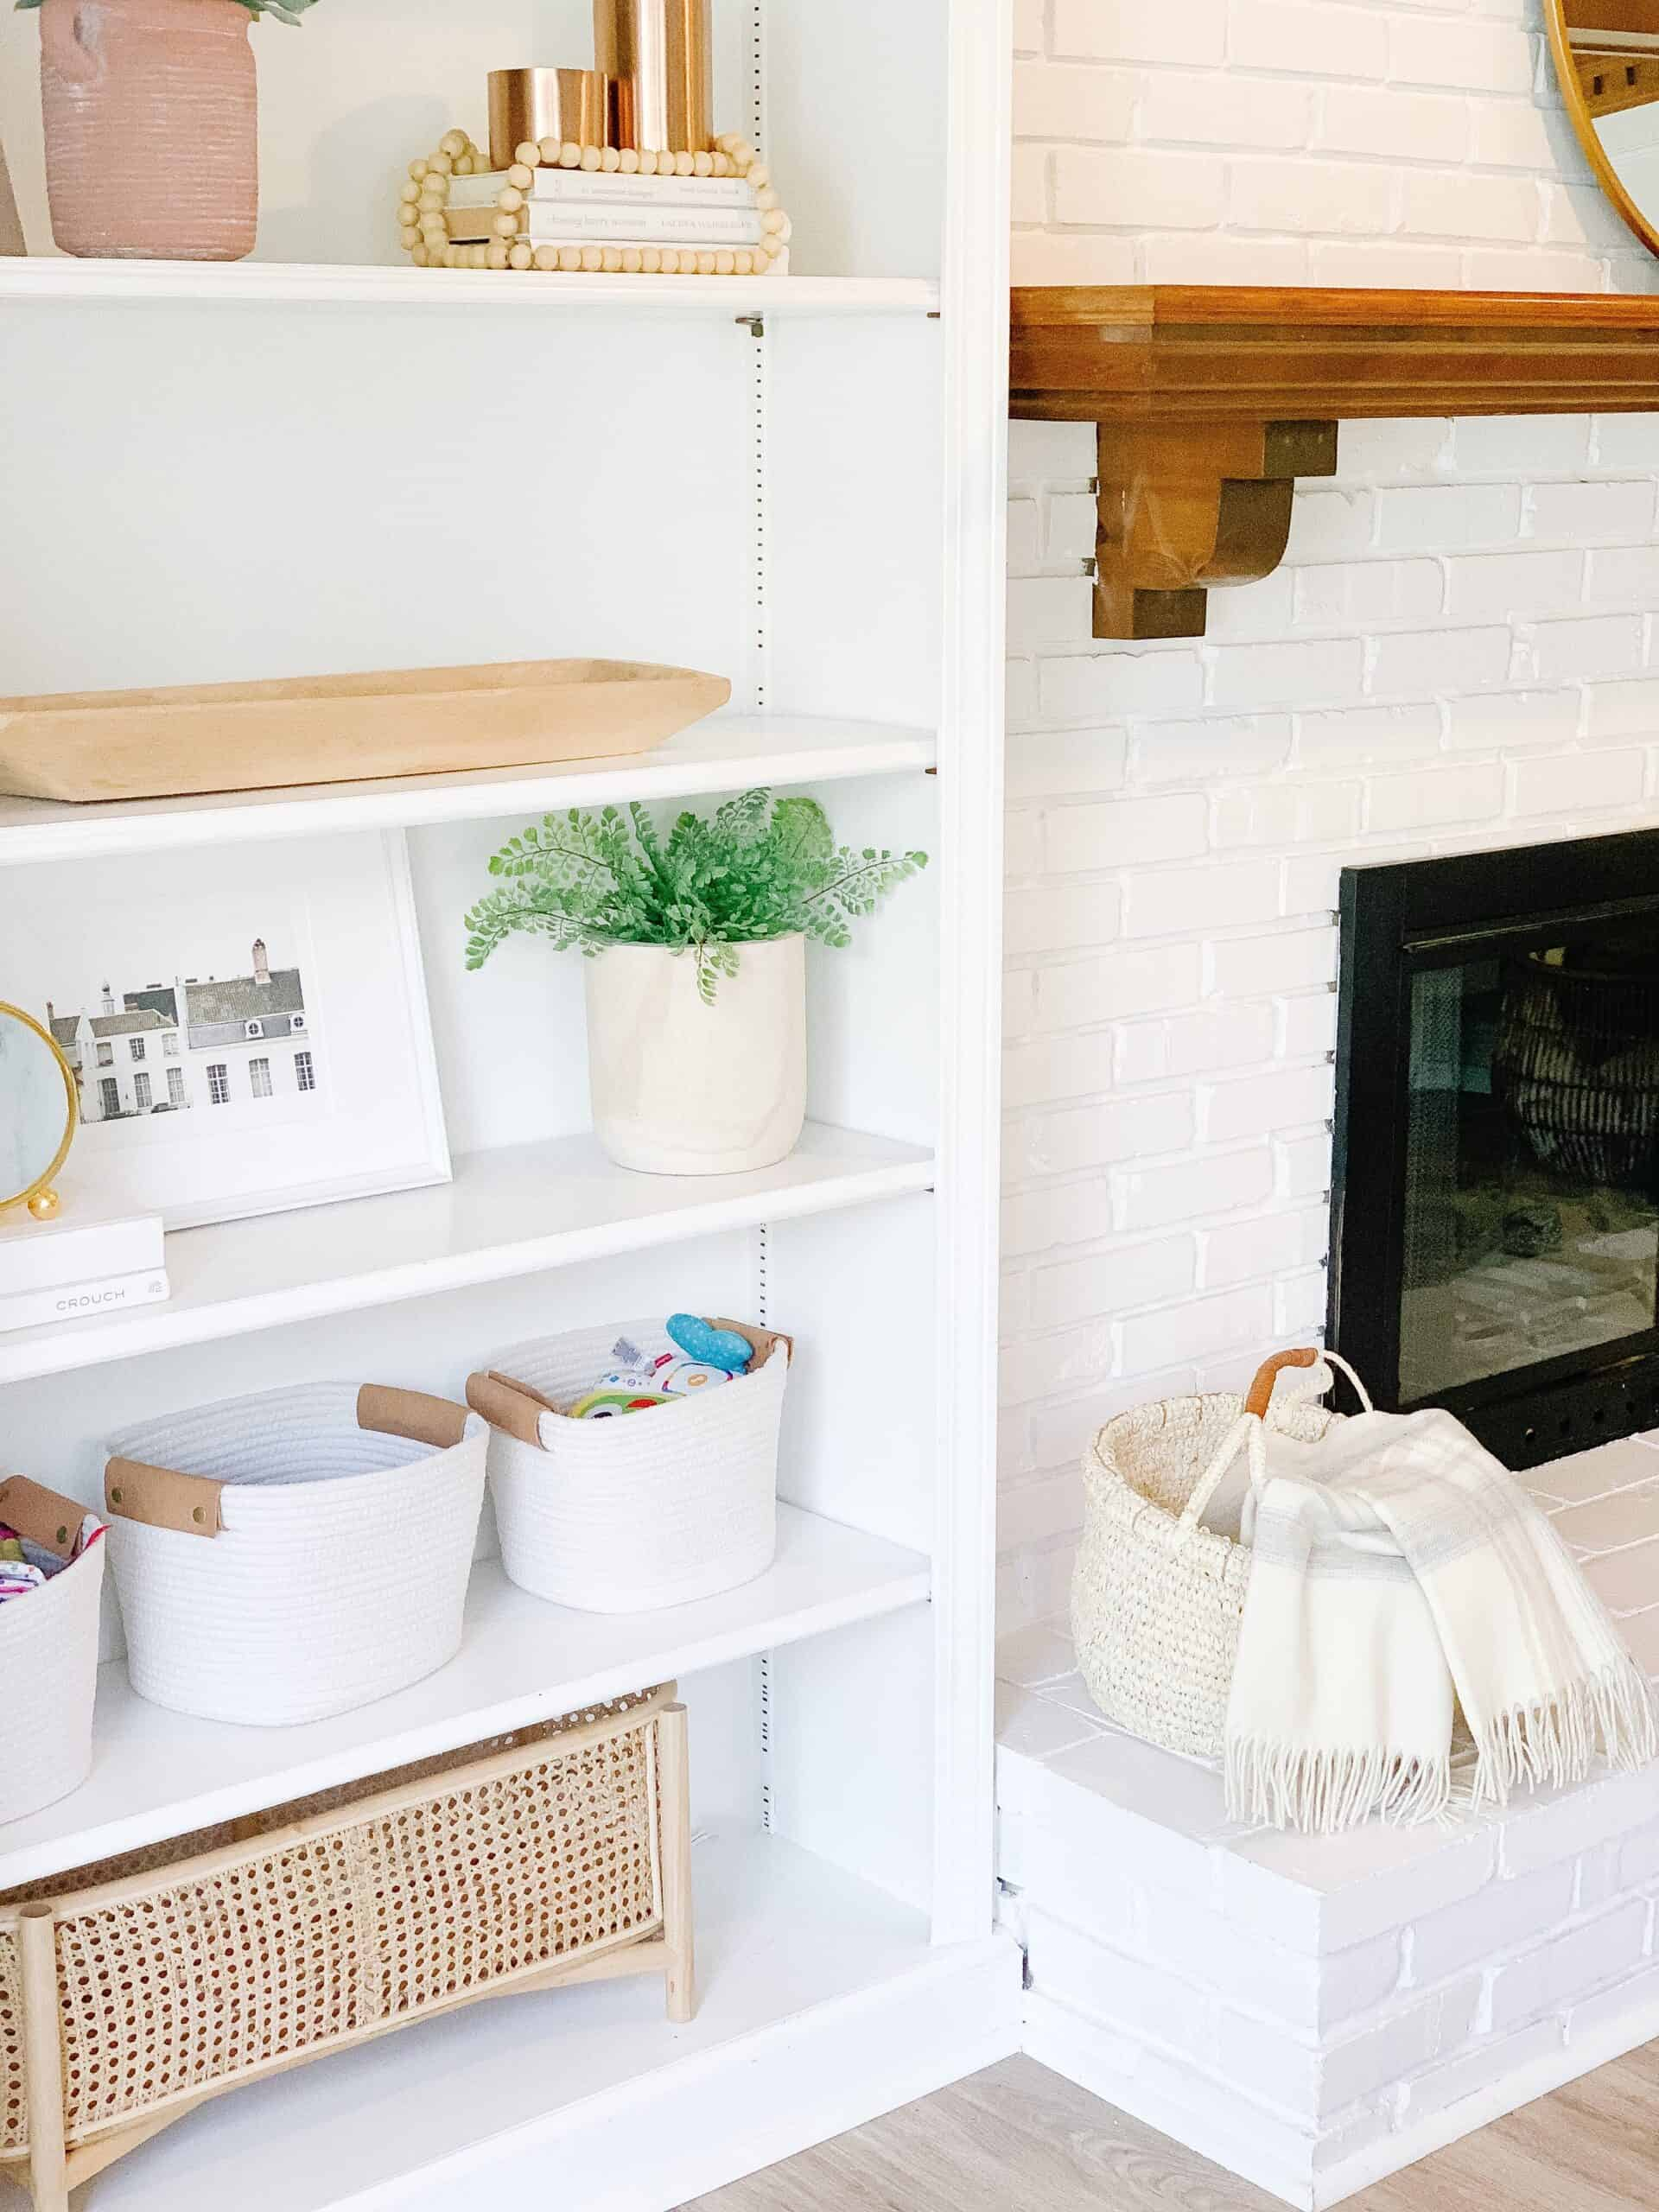 Organized built ins by white brick fireplace